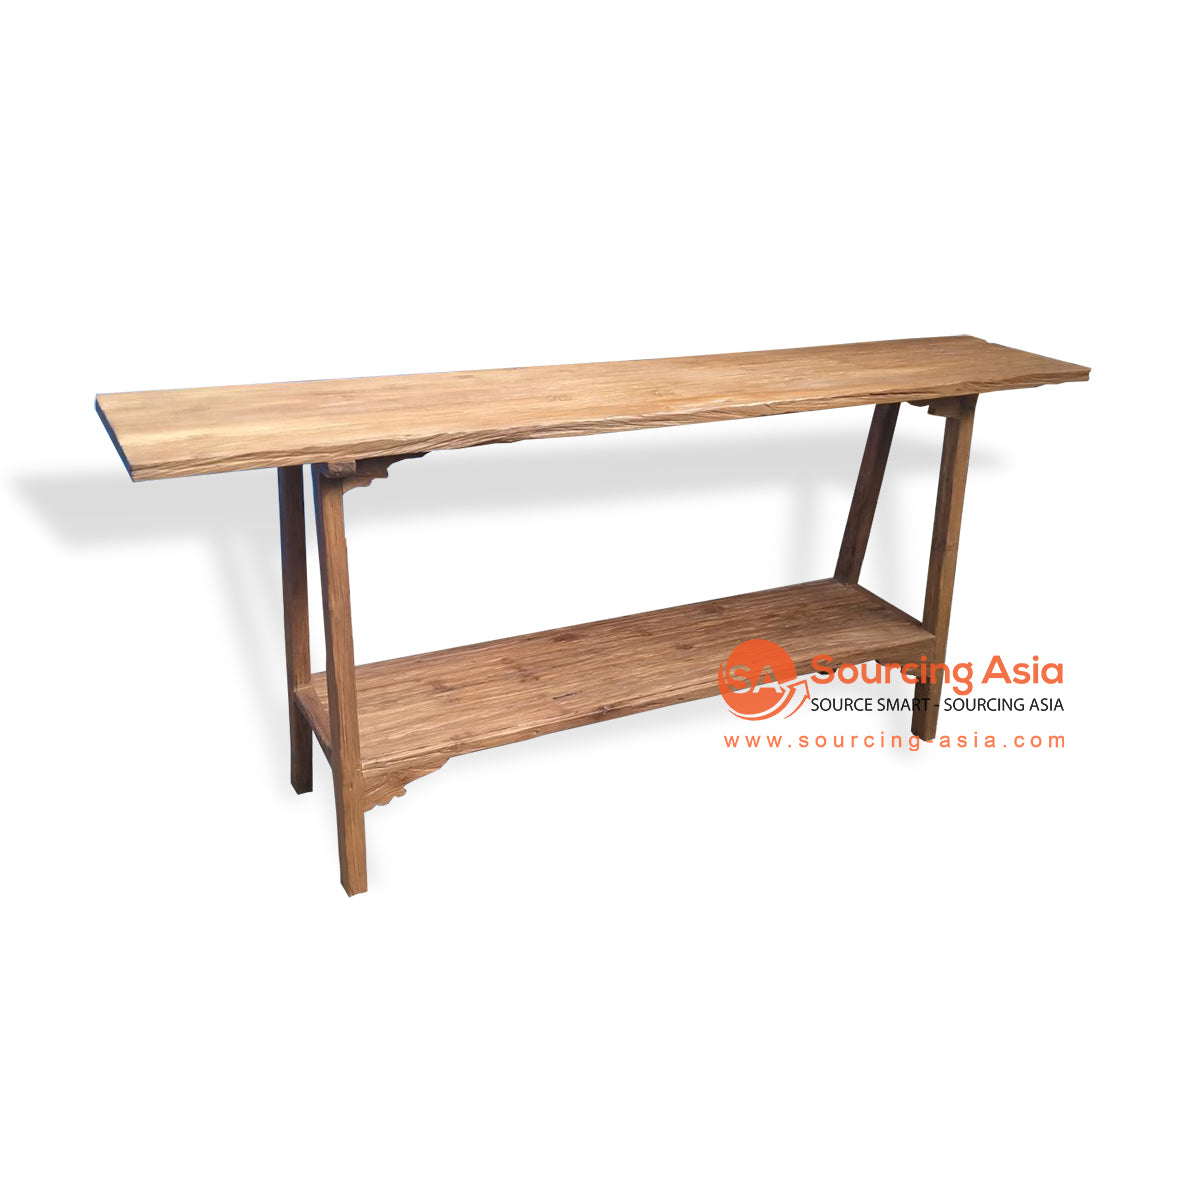 KYT155 CONSOLE TABLE WITH SHELF